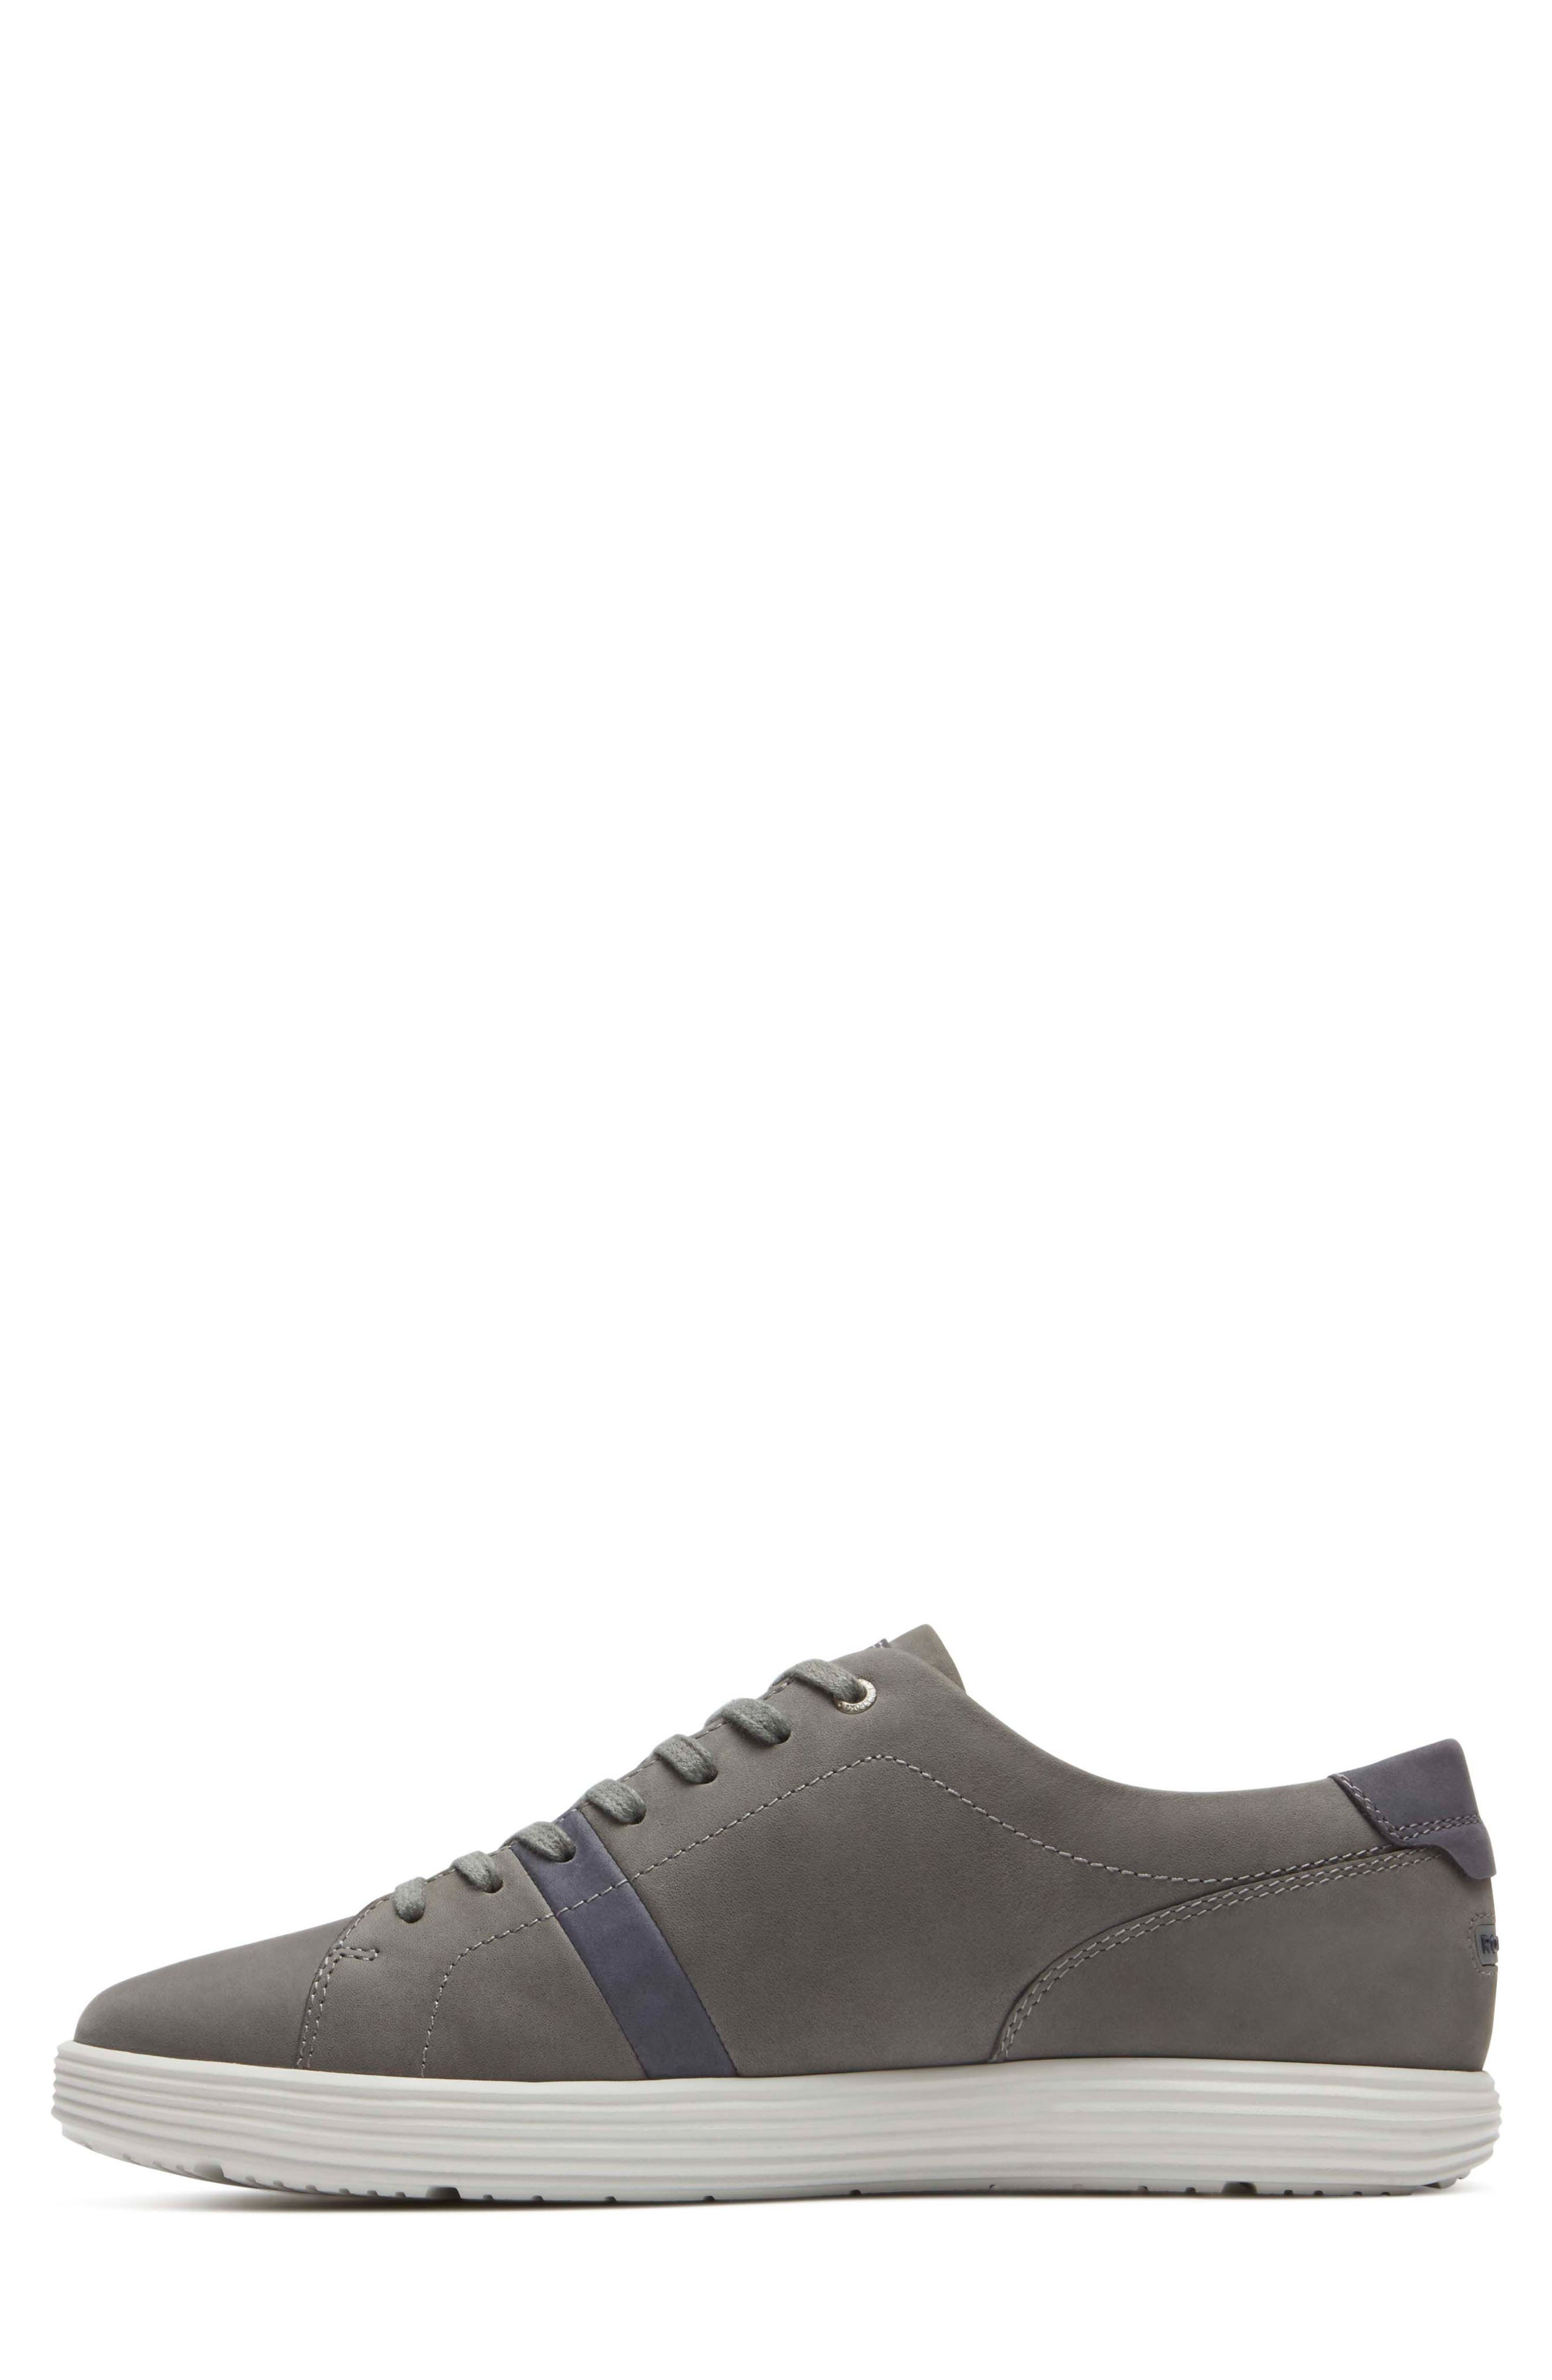 Thurston Sneaker,                             Alternate thumbnail 9, color,